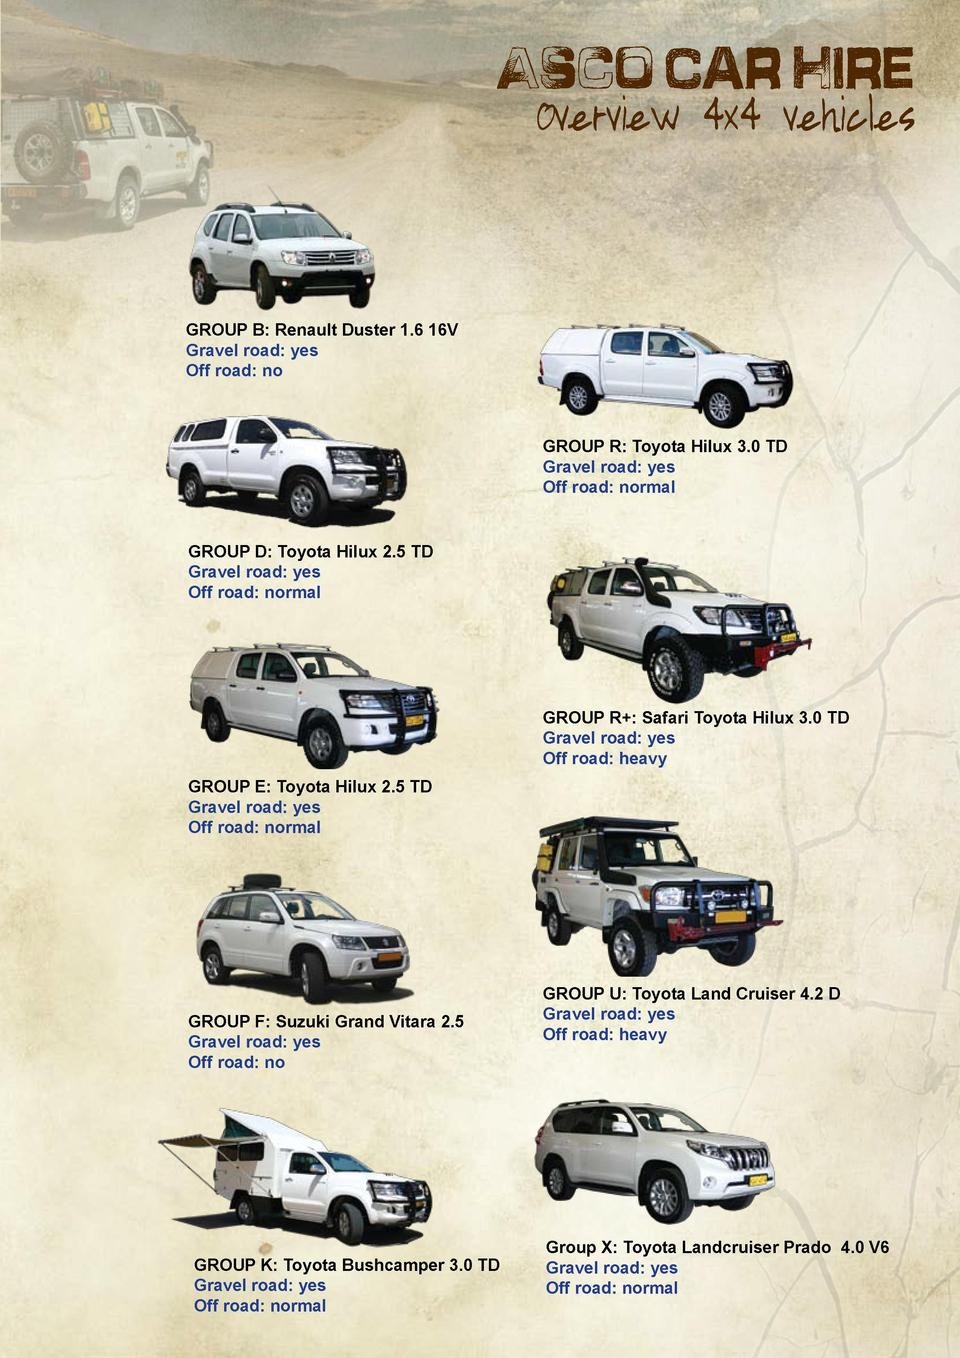 Asco Car Hire  Overview 4x4 vehicles  GROUP B  Renault Duster 1.6 16V Gravel road  yes Off road  no  GROUP R  Toyota Hilux...